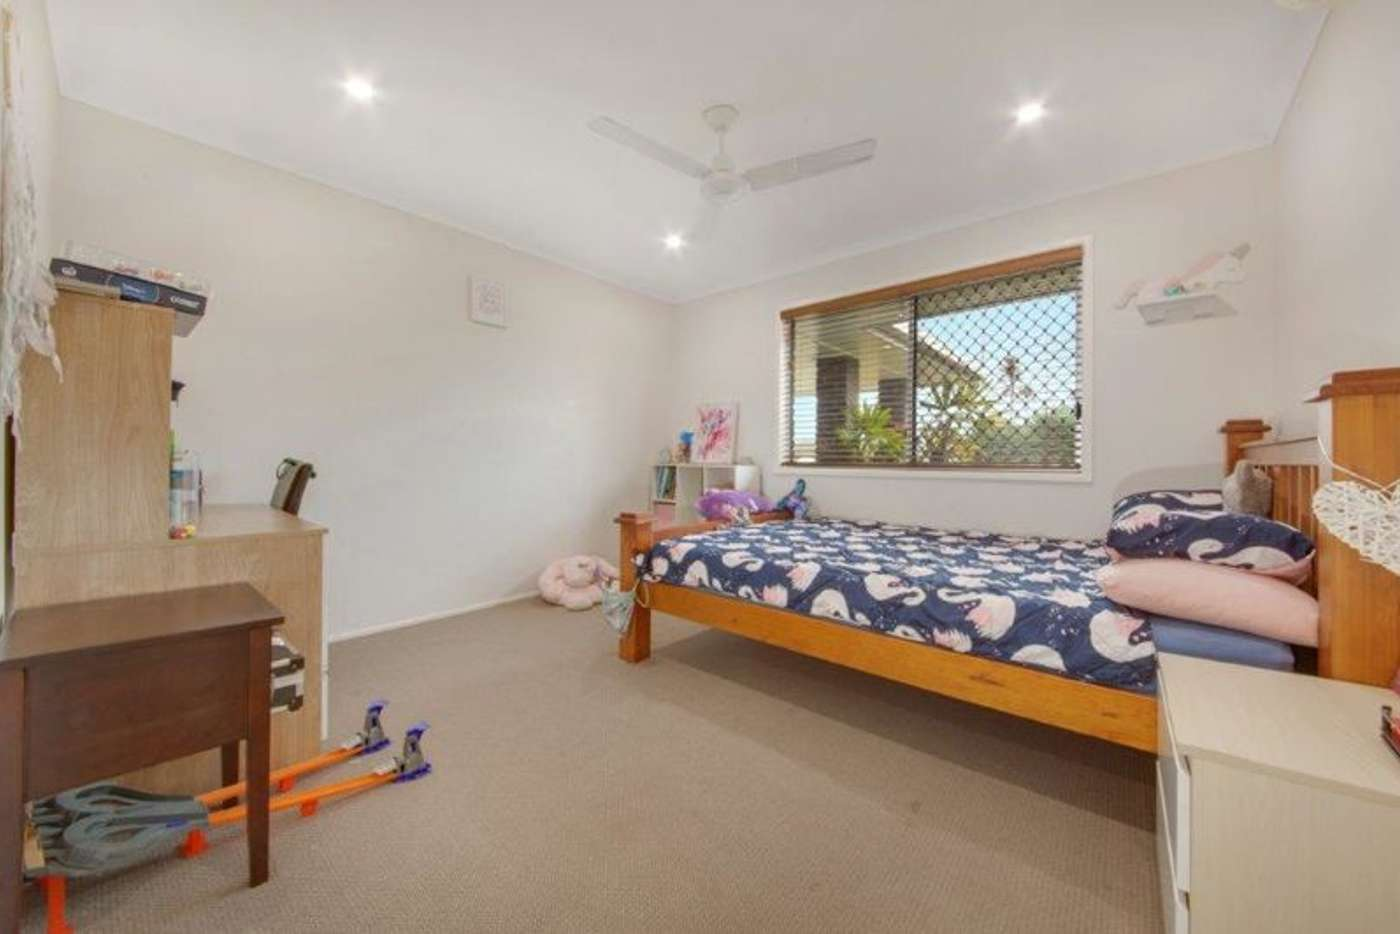 Sixth view of Homely house listing, 3 Finchley Street, Telina QLD 4680